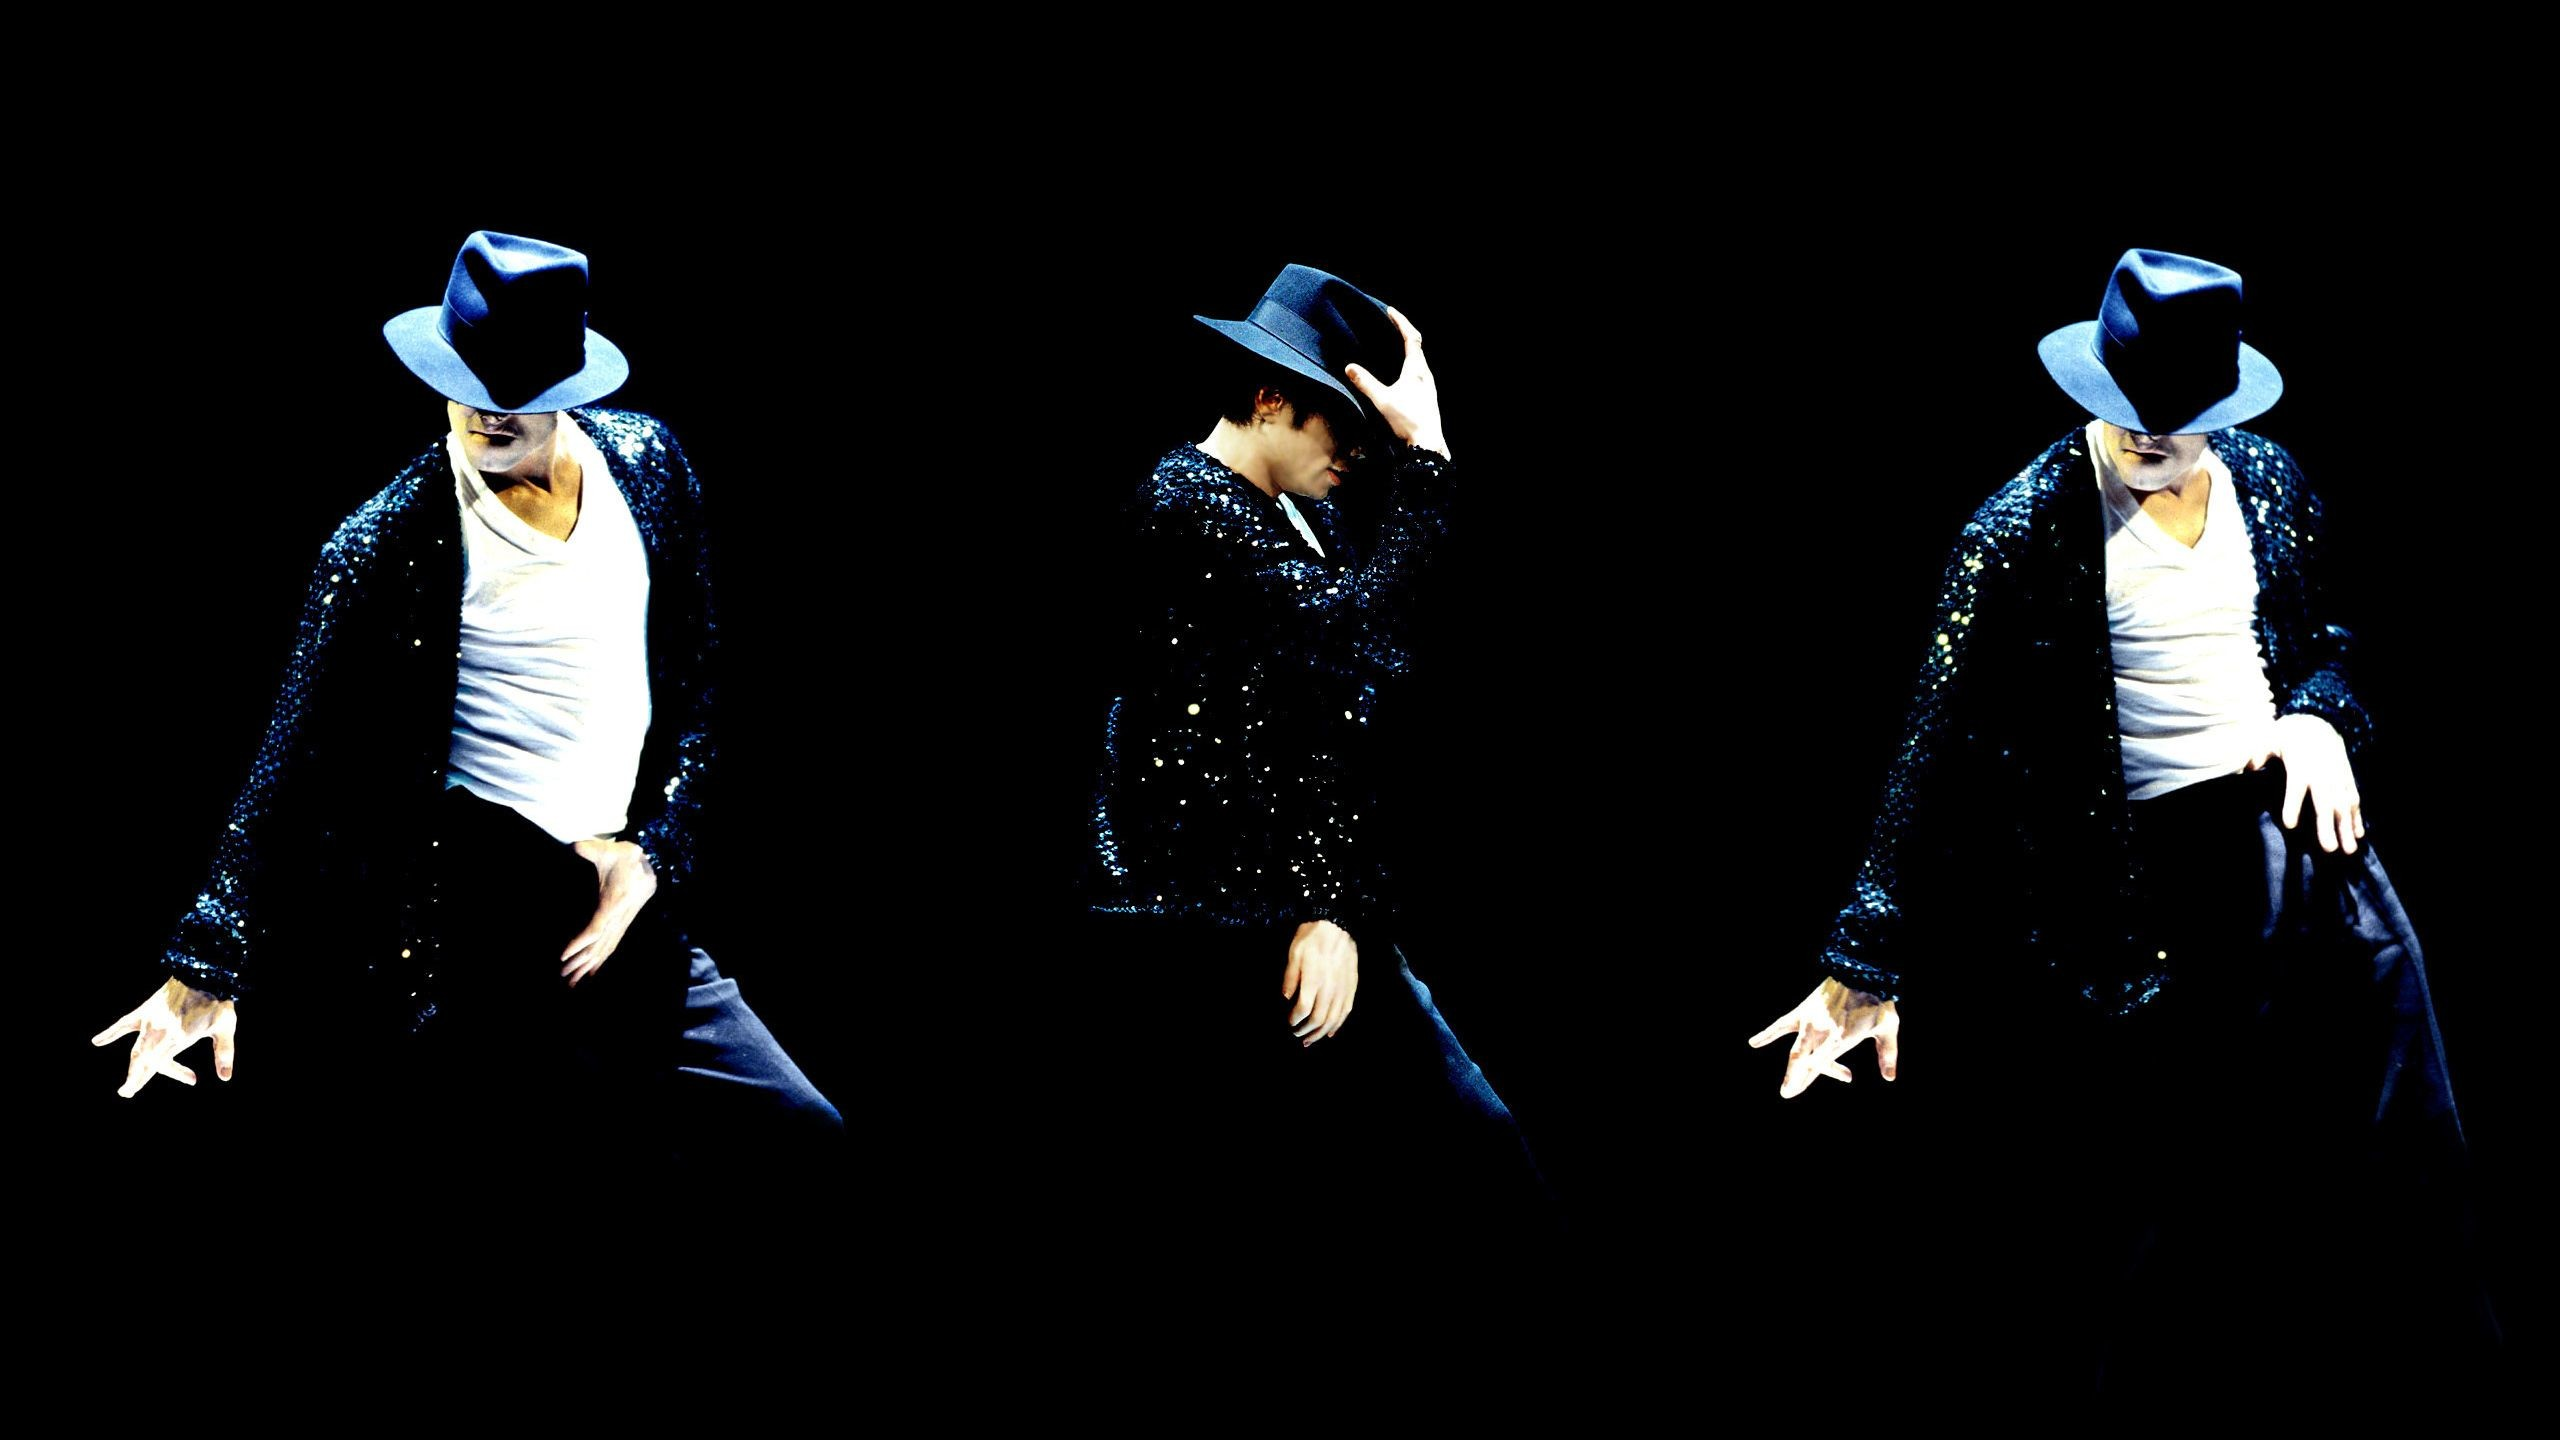 2560x1440 101 Michael Jackson HD Wallpapers | Backgrounds - Wallpaper Abyss